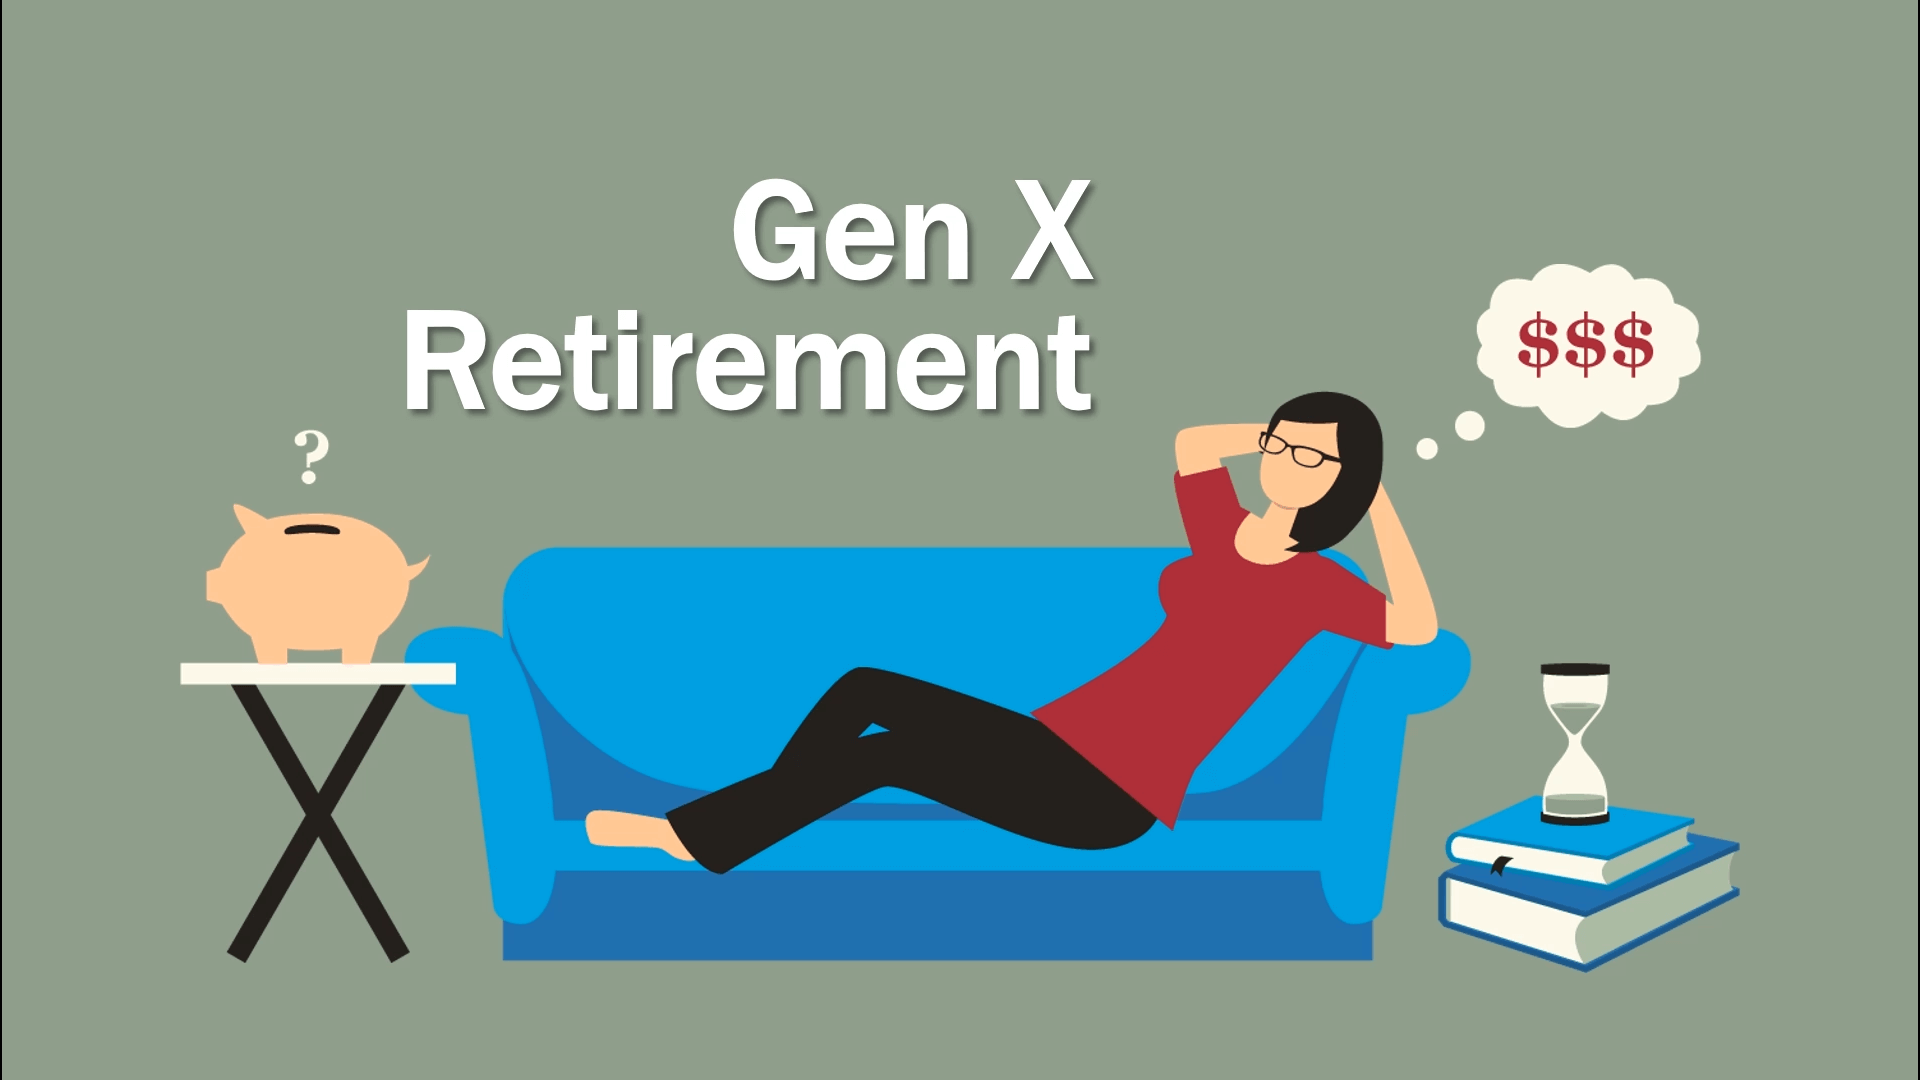 https://www.consolidatedcredit.org/wp-content/uploads/2017/12/GenX-Retirement-Thumbnail.png